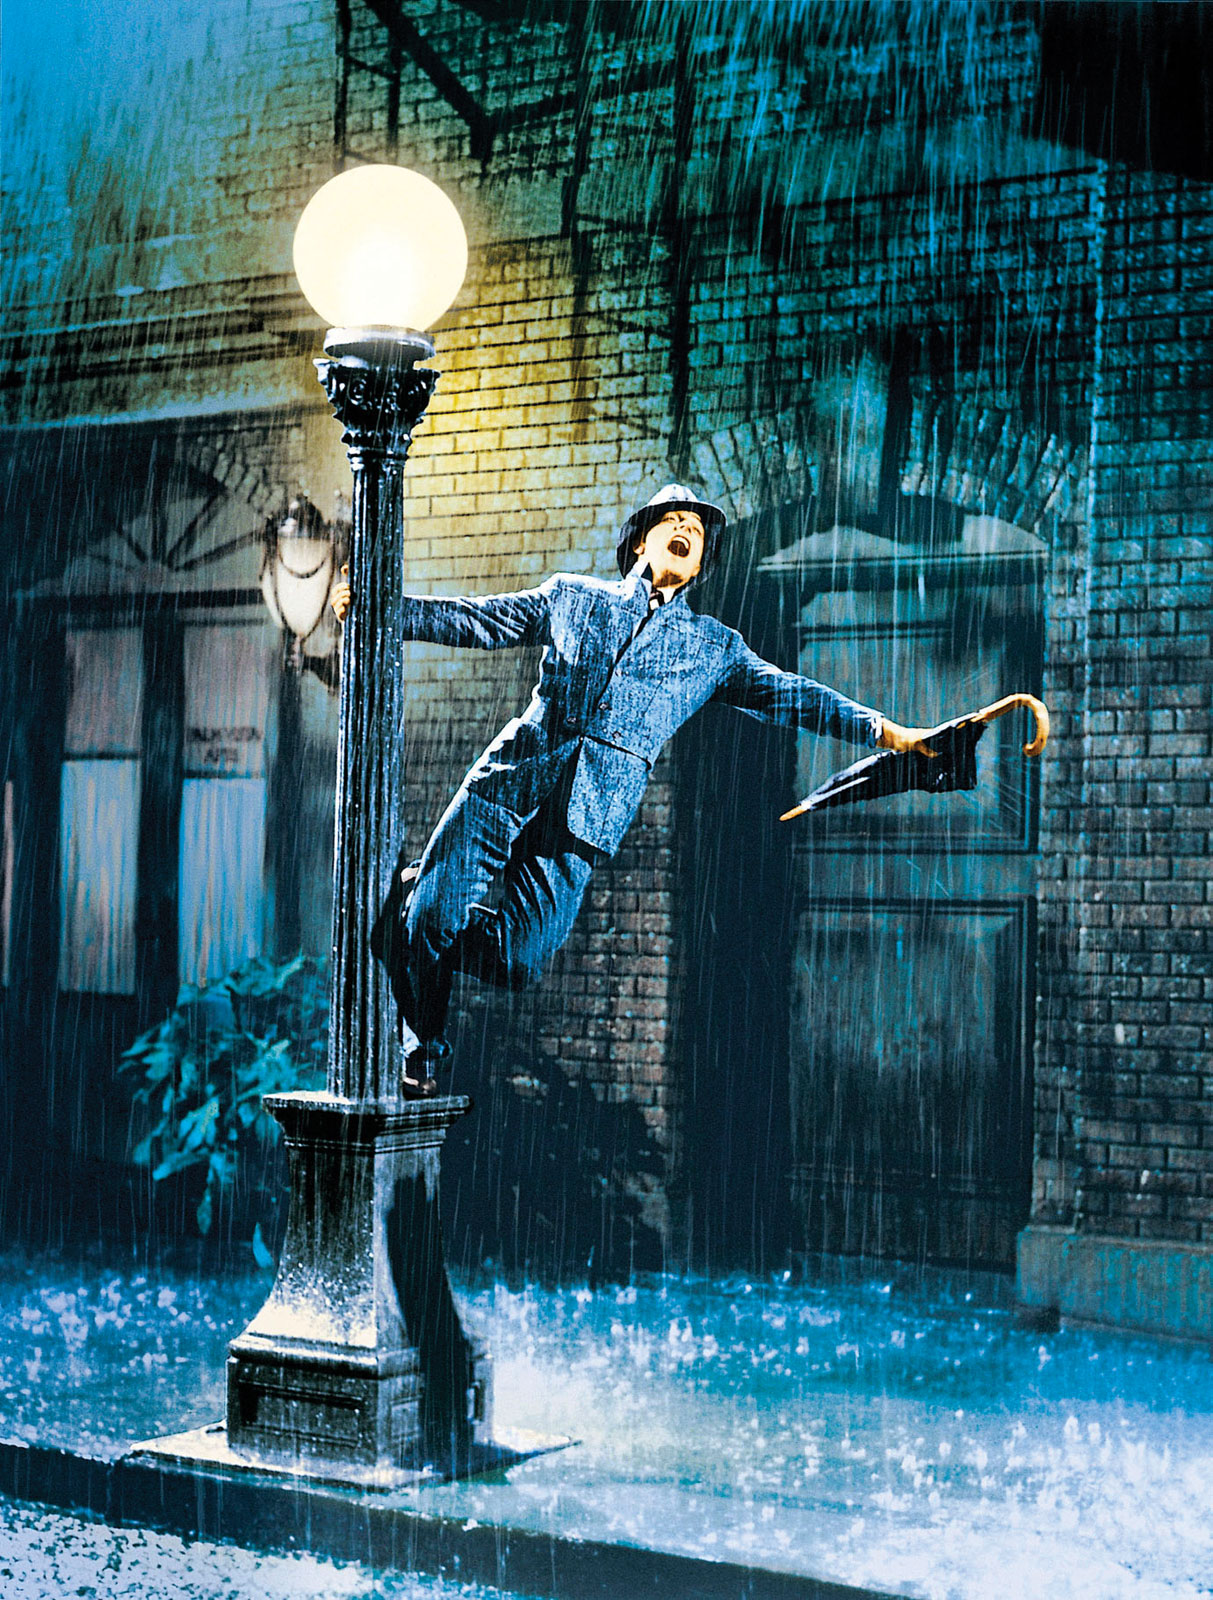 Kelly singing in the rain.